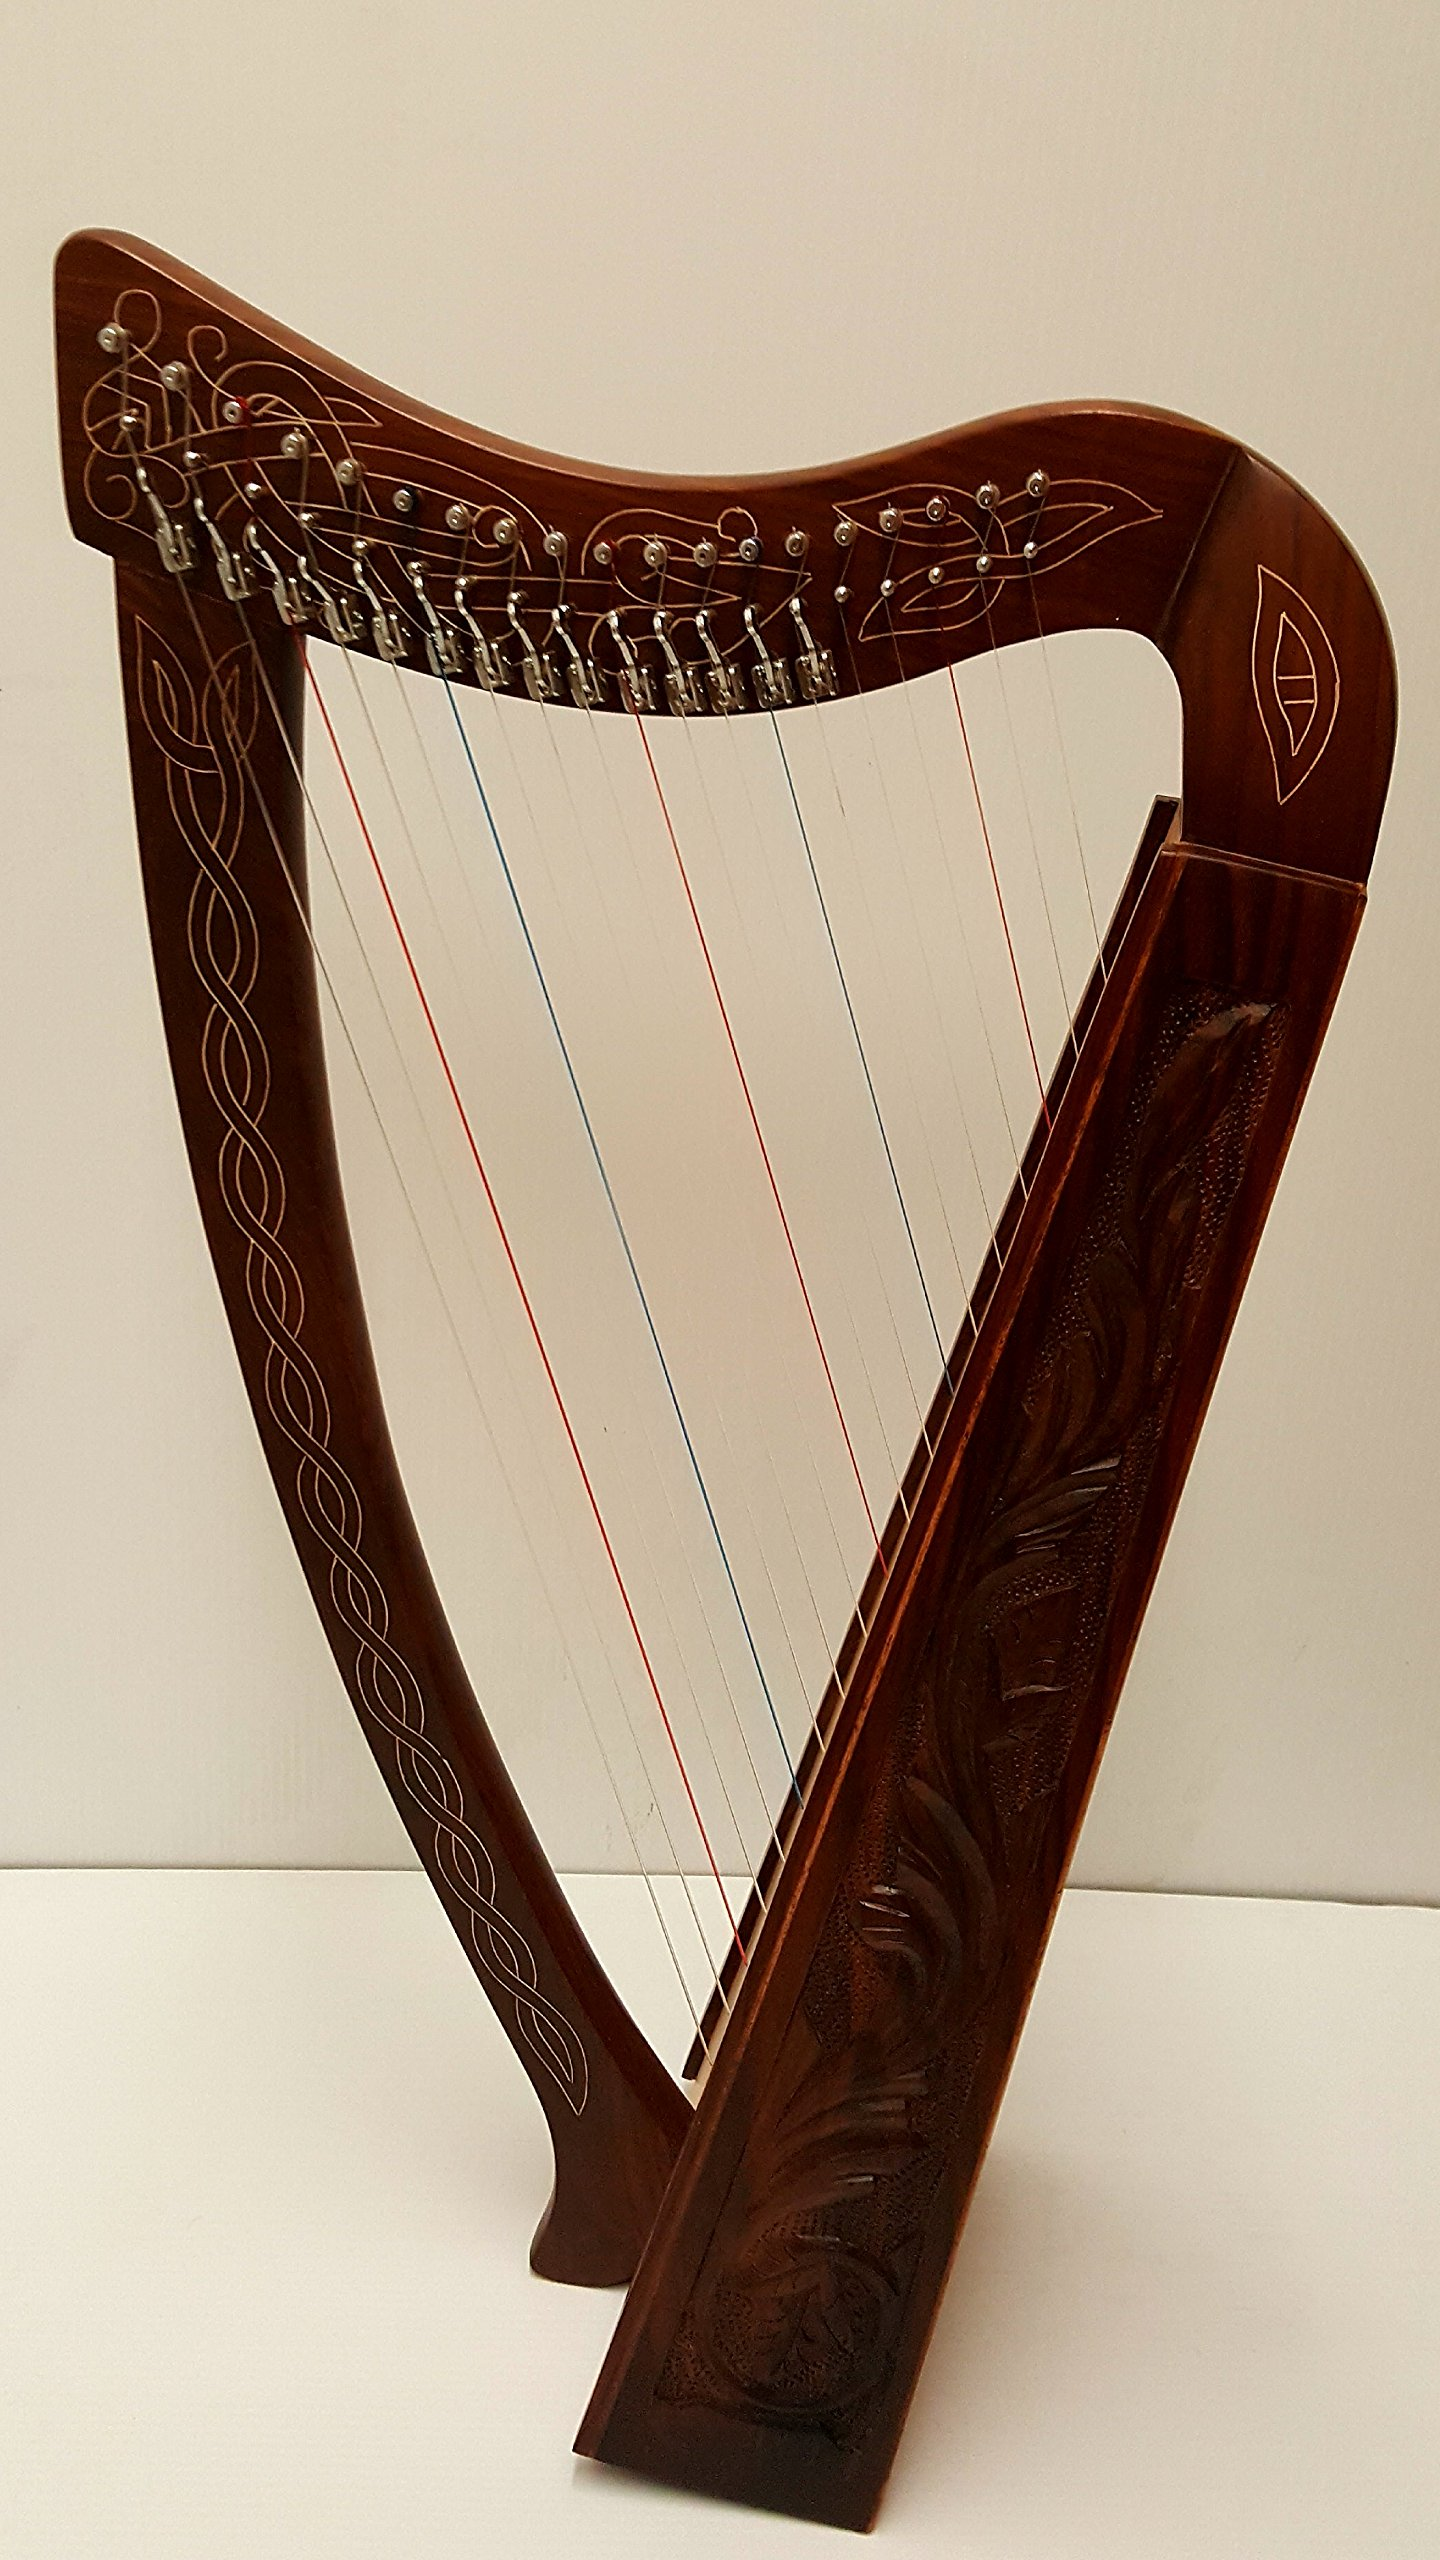 Celtic Irish Knee Harp 19 Strings with Levers Solid Wood Free Bag Strings Key by Sturgis